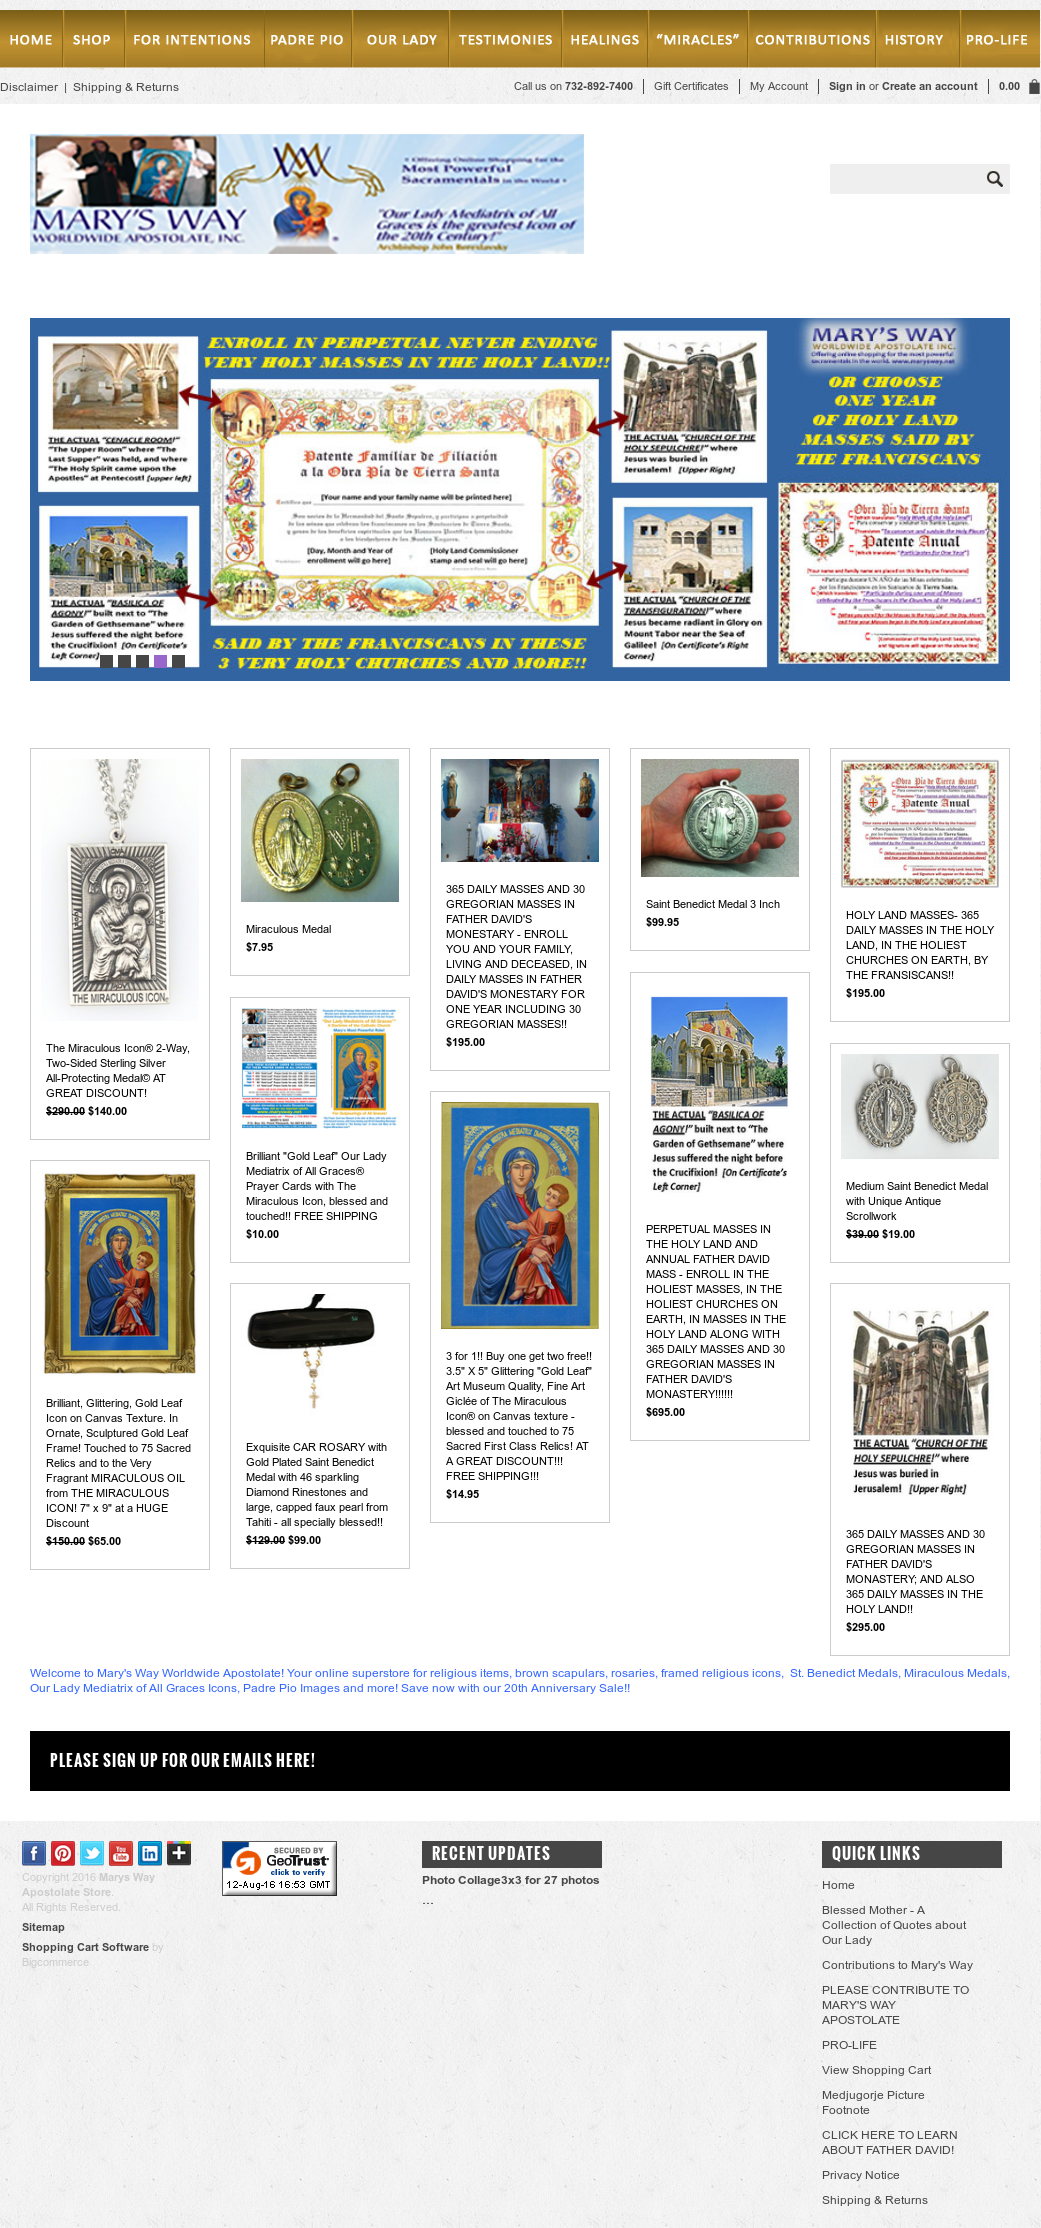 Mary's Way Worldwide Apostolate Competitors, Revenue and Employees